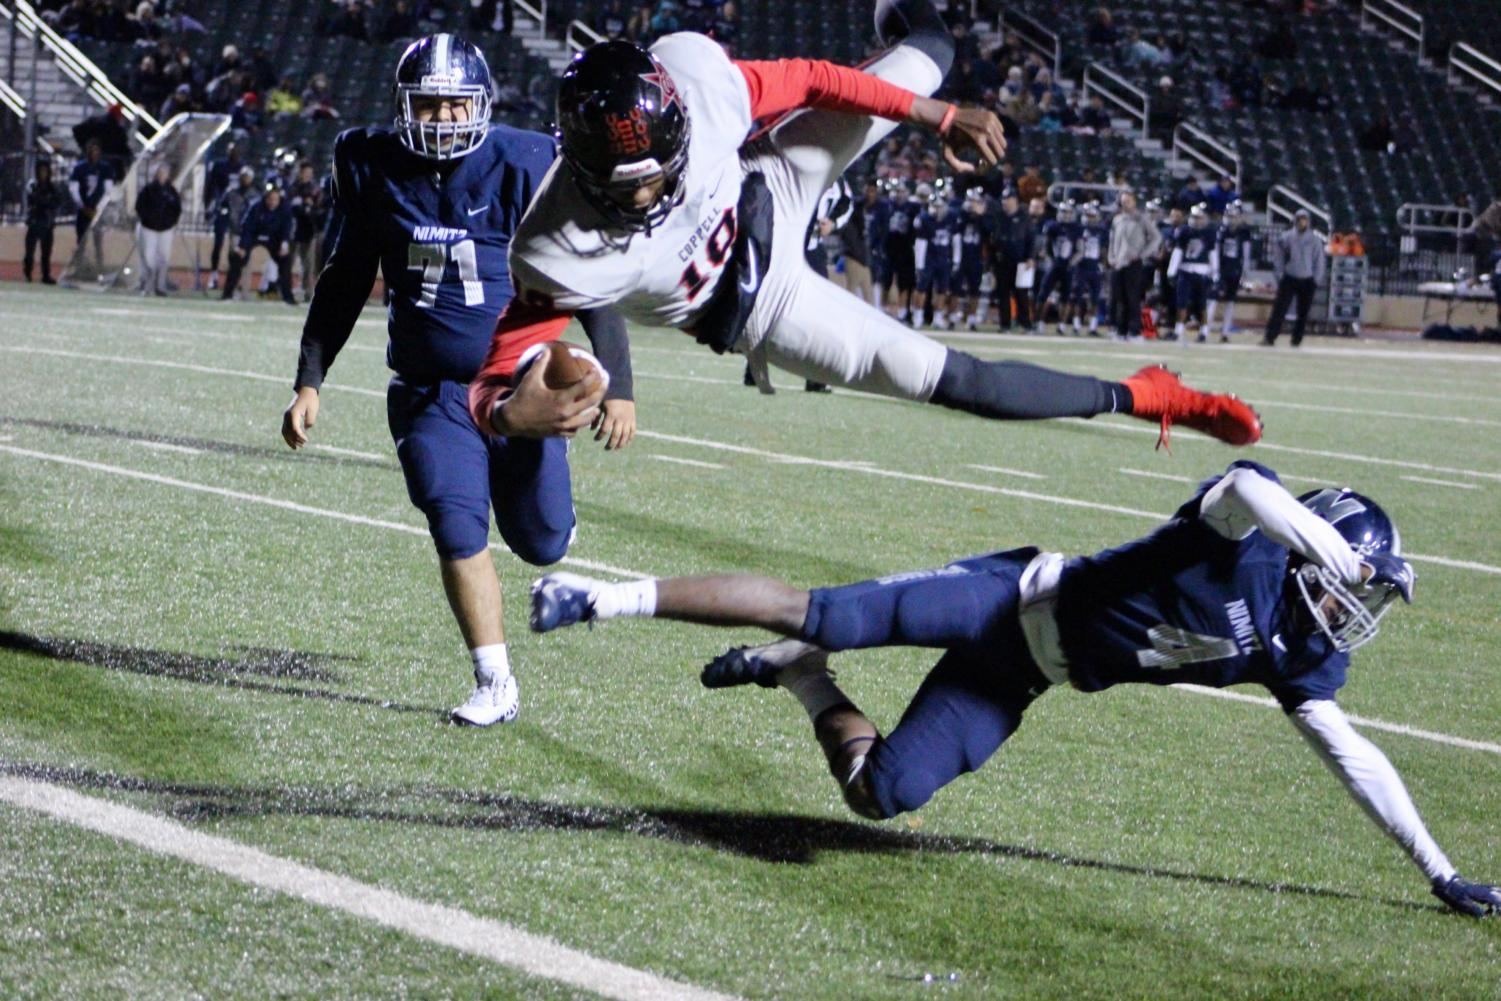 Coppell High school senior quarterback Taj Gregory dives into the endzone getting a touchdown for the cowboys during the game on Nov 9 at Joy and Ralph Ellis Stadium. The Cowboys beat the Vikings, 35-14.